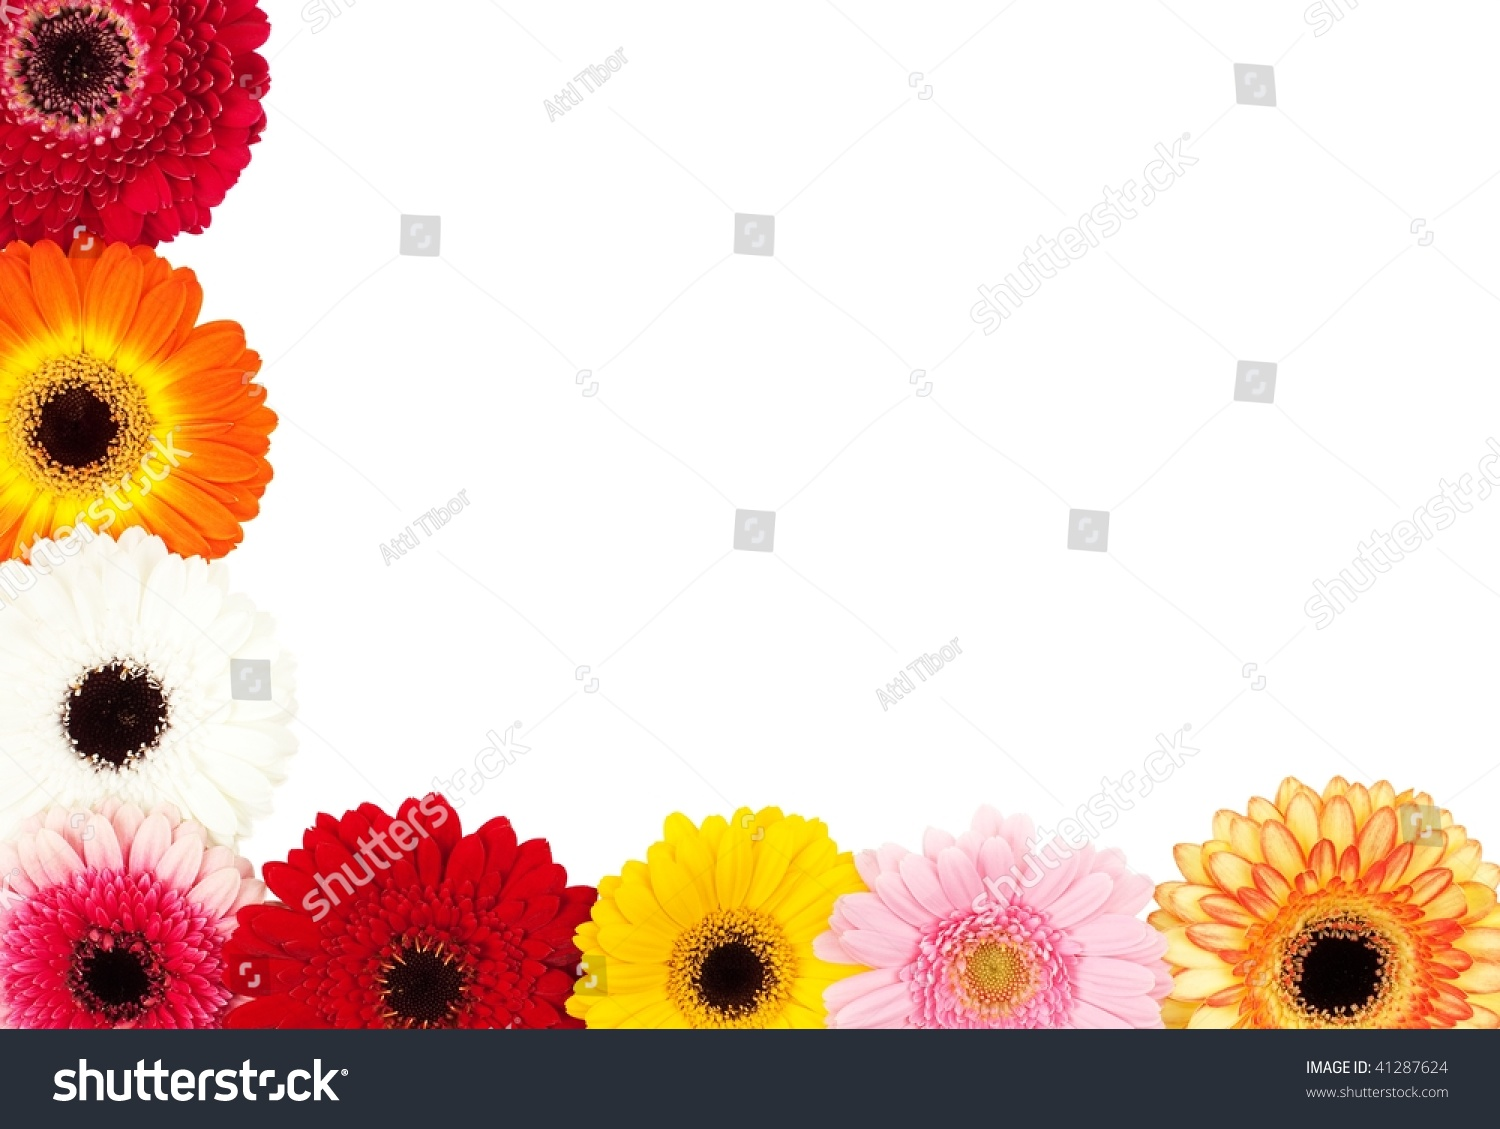 Colorful daisy flowers border isolated on stock photo edit now colorful daisy flowers border isolated on white izmirmasajfo